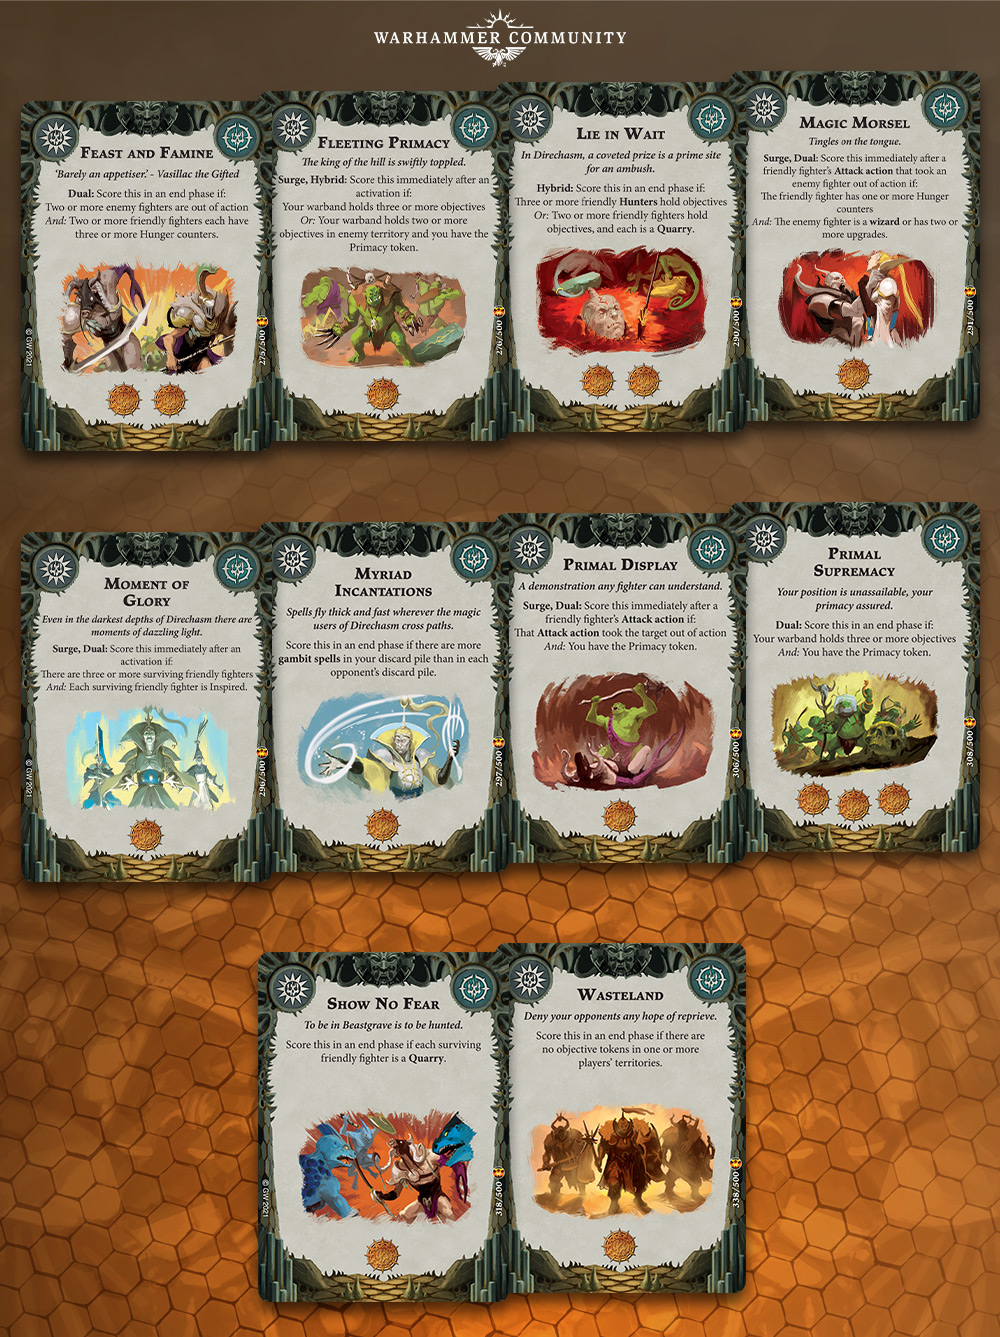 WHUW MadmobCards May4 Cardset4e